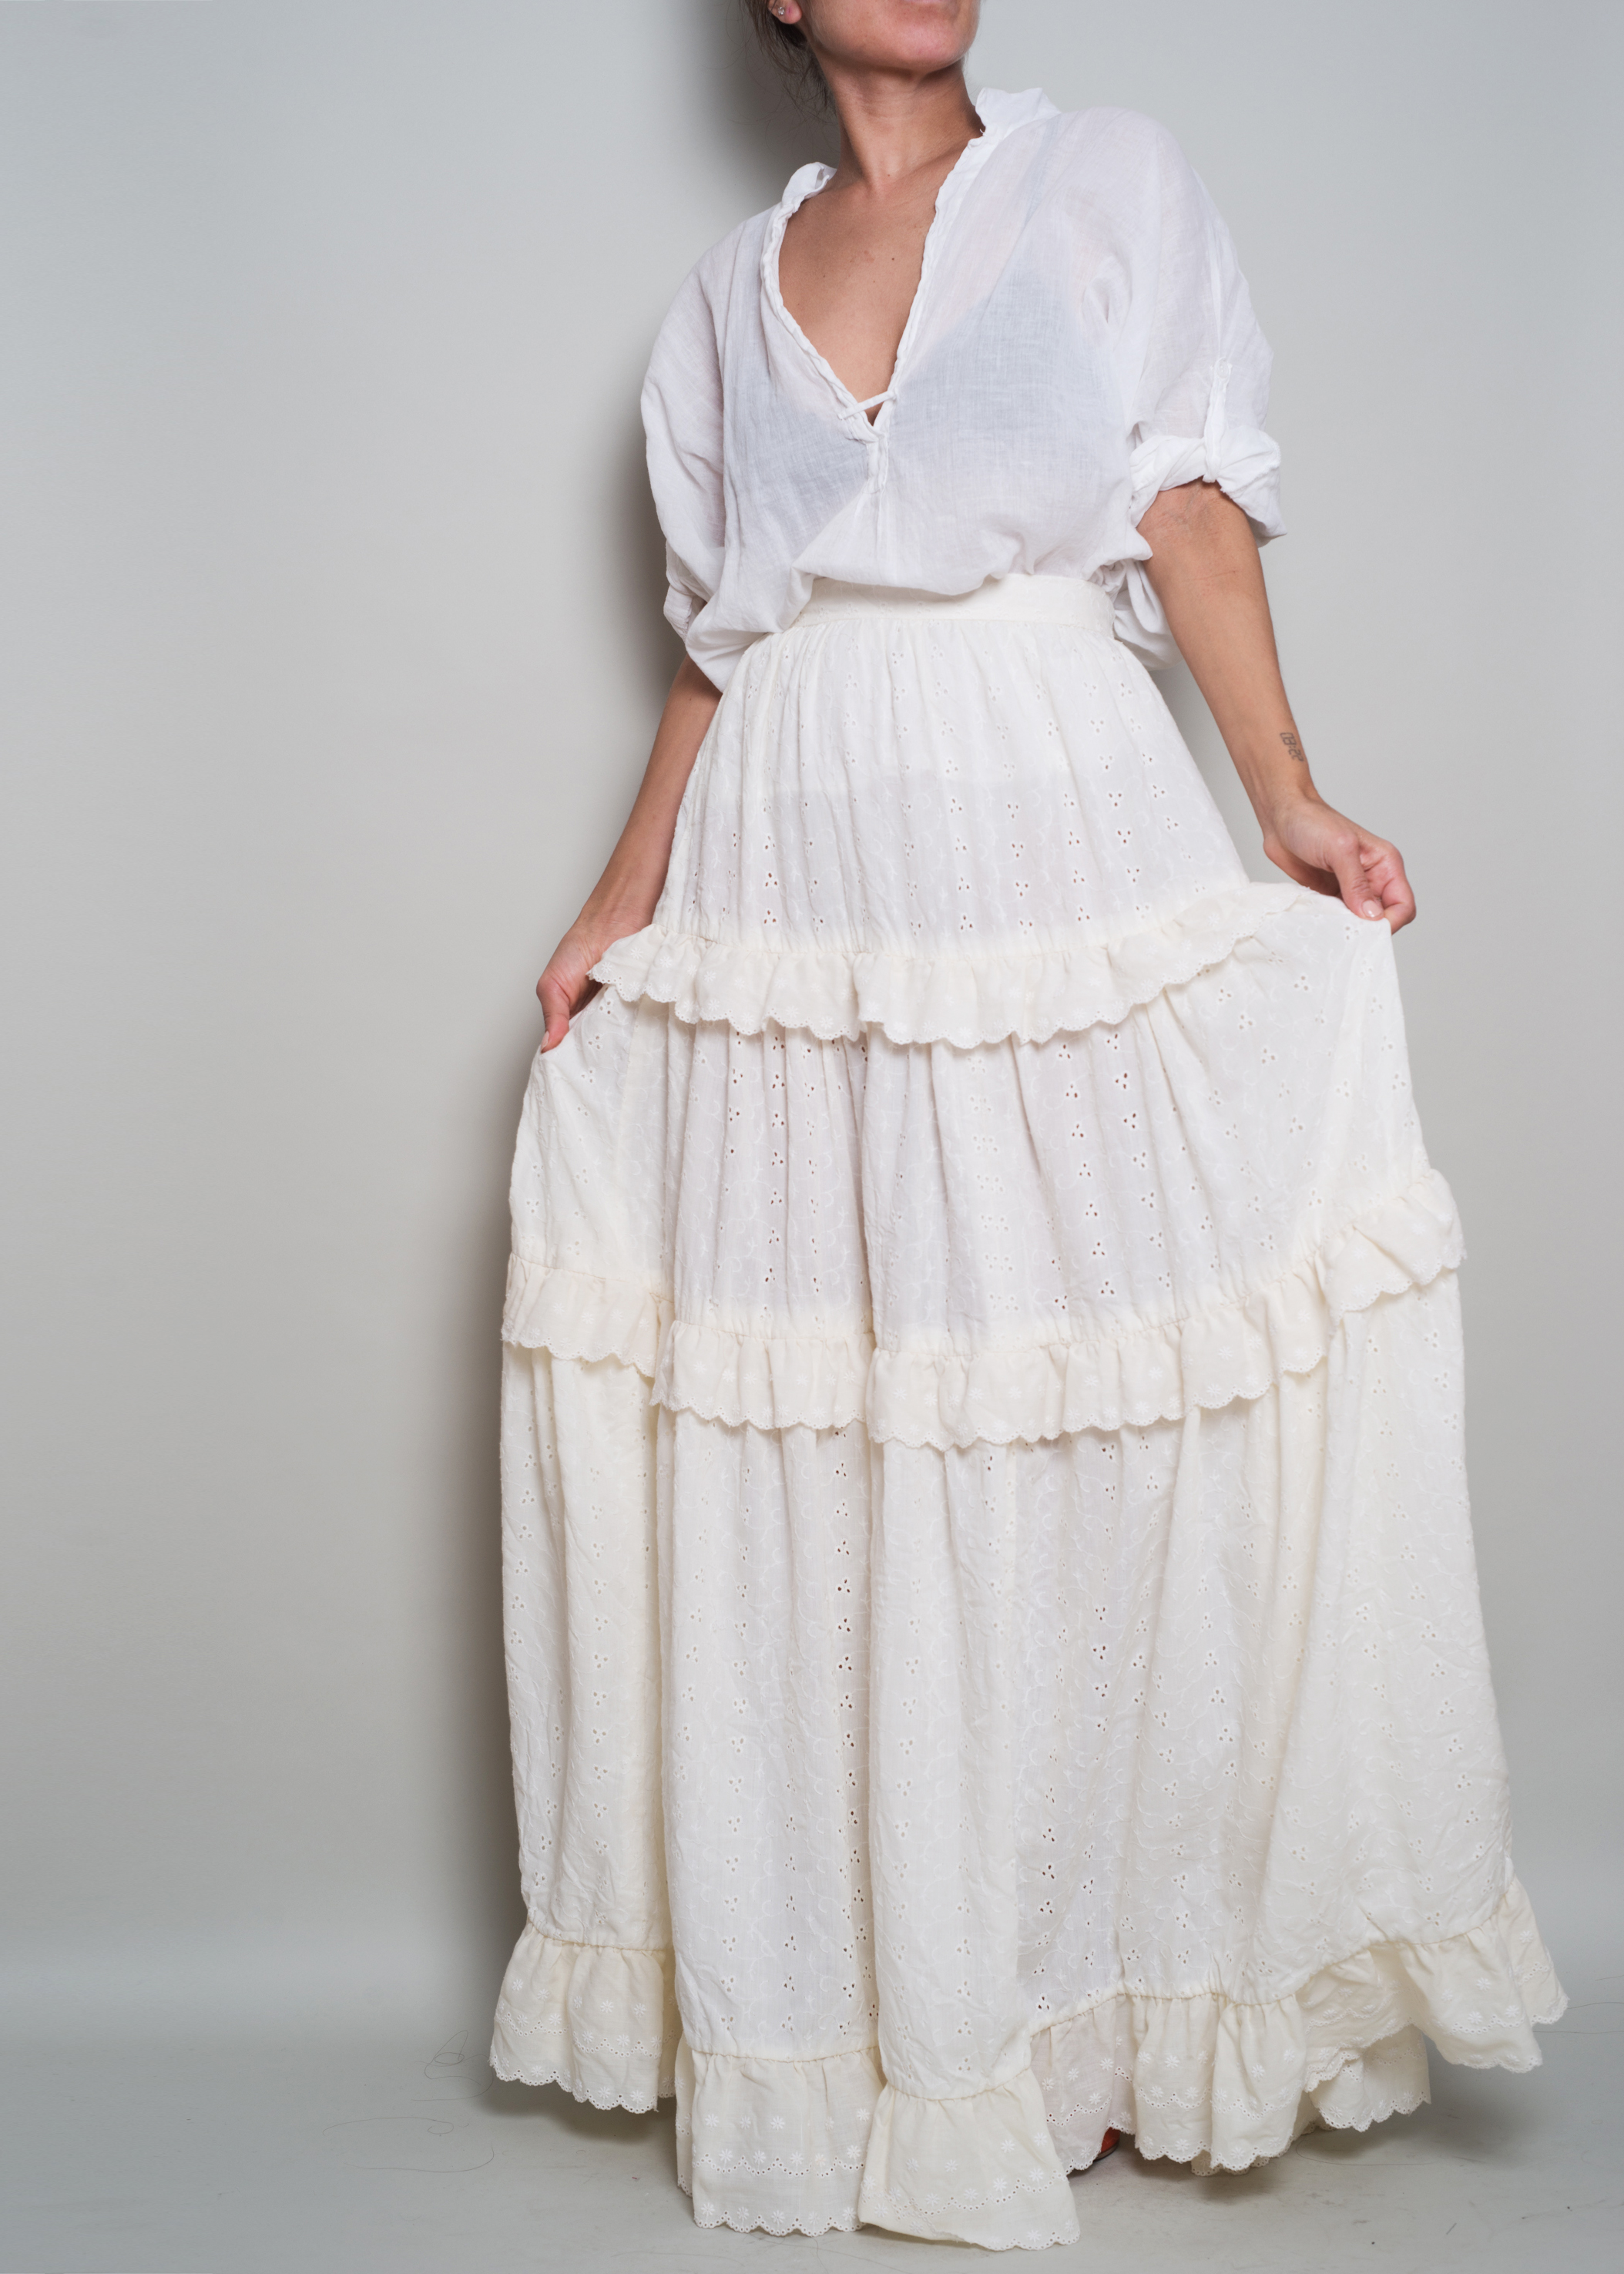 A_Part_of_the_Rest_Vintage_1970s_Embroidery_Eyelet_Tiered_Ivory_Prairie_Maxi_Skirt006.jpg